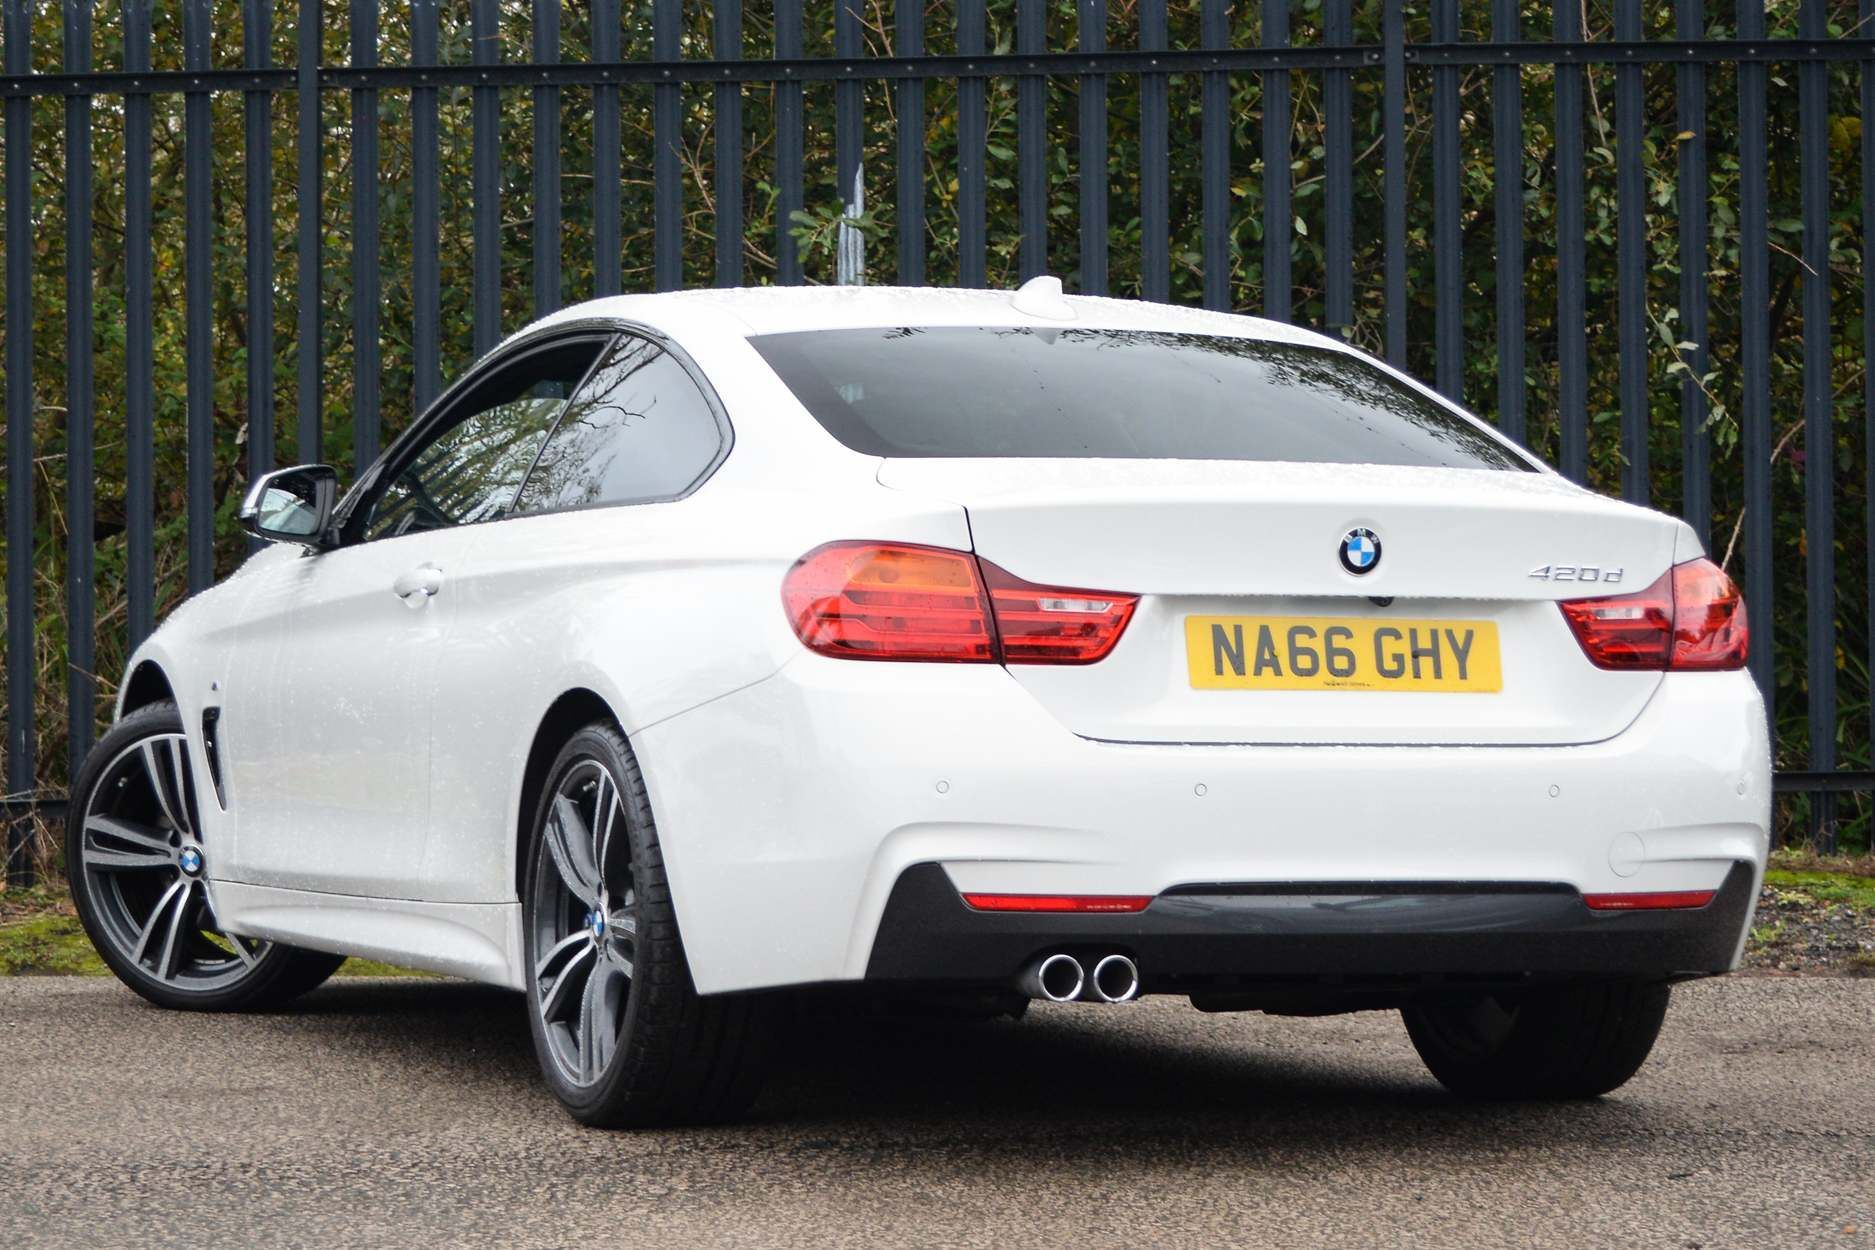 Image 2 - BMW 420d M Sport Coupe (NA66GHY)